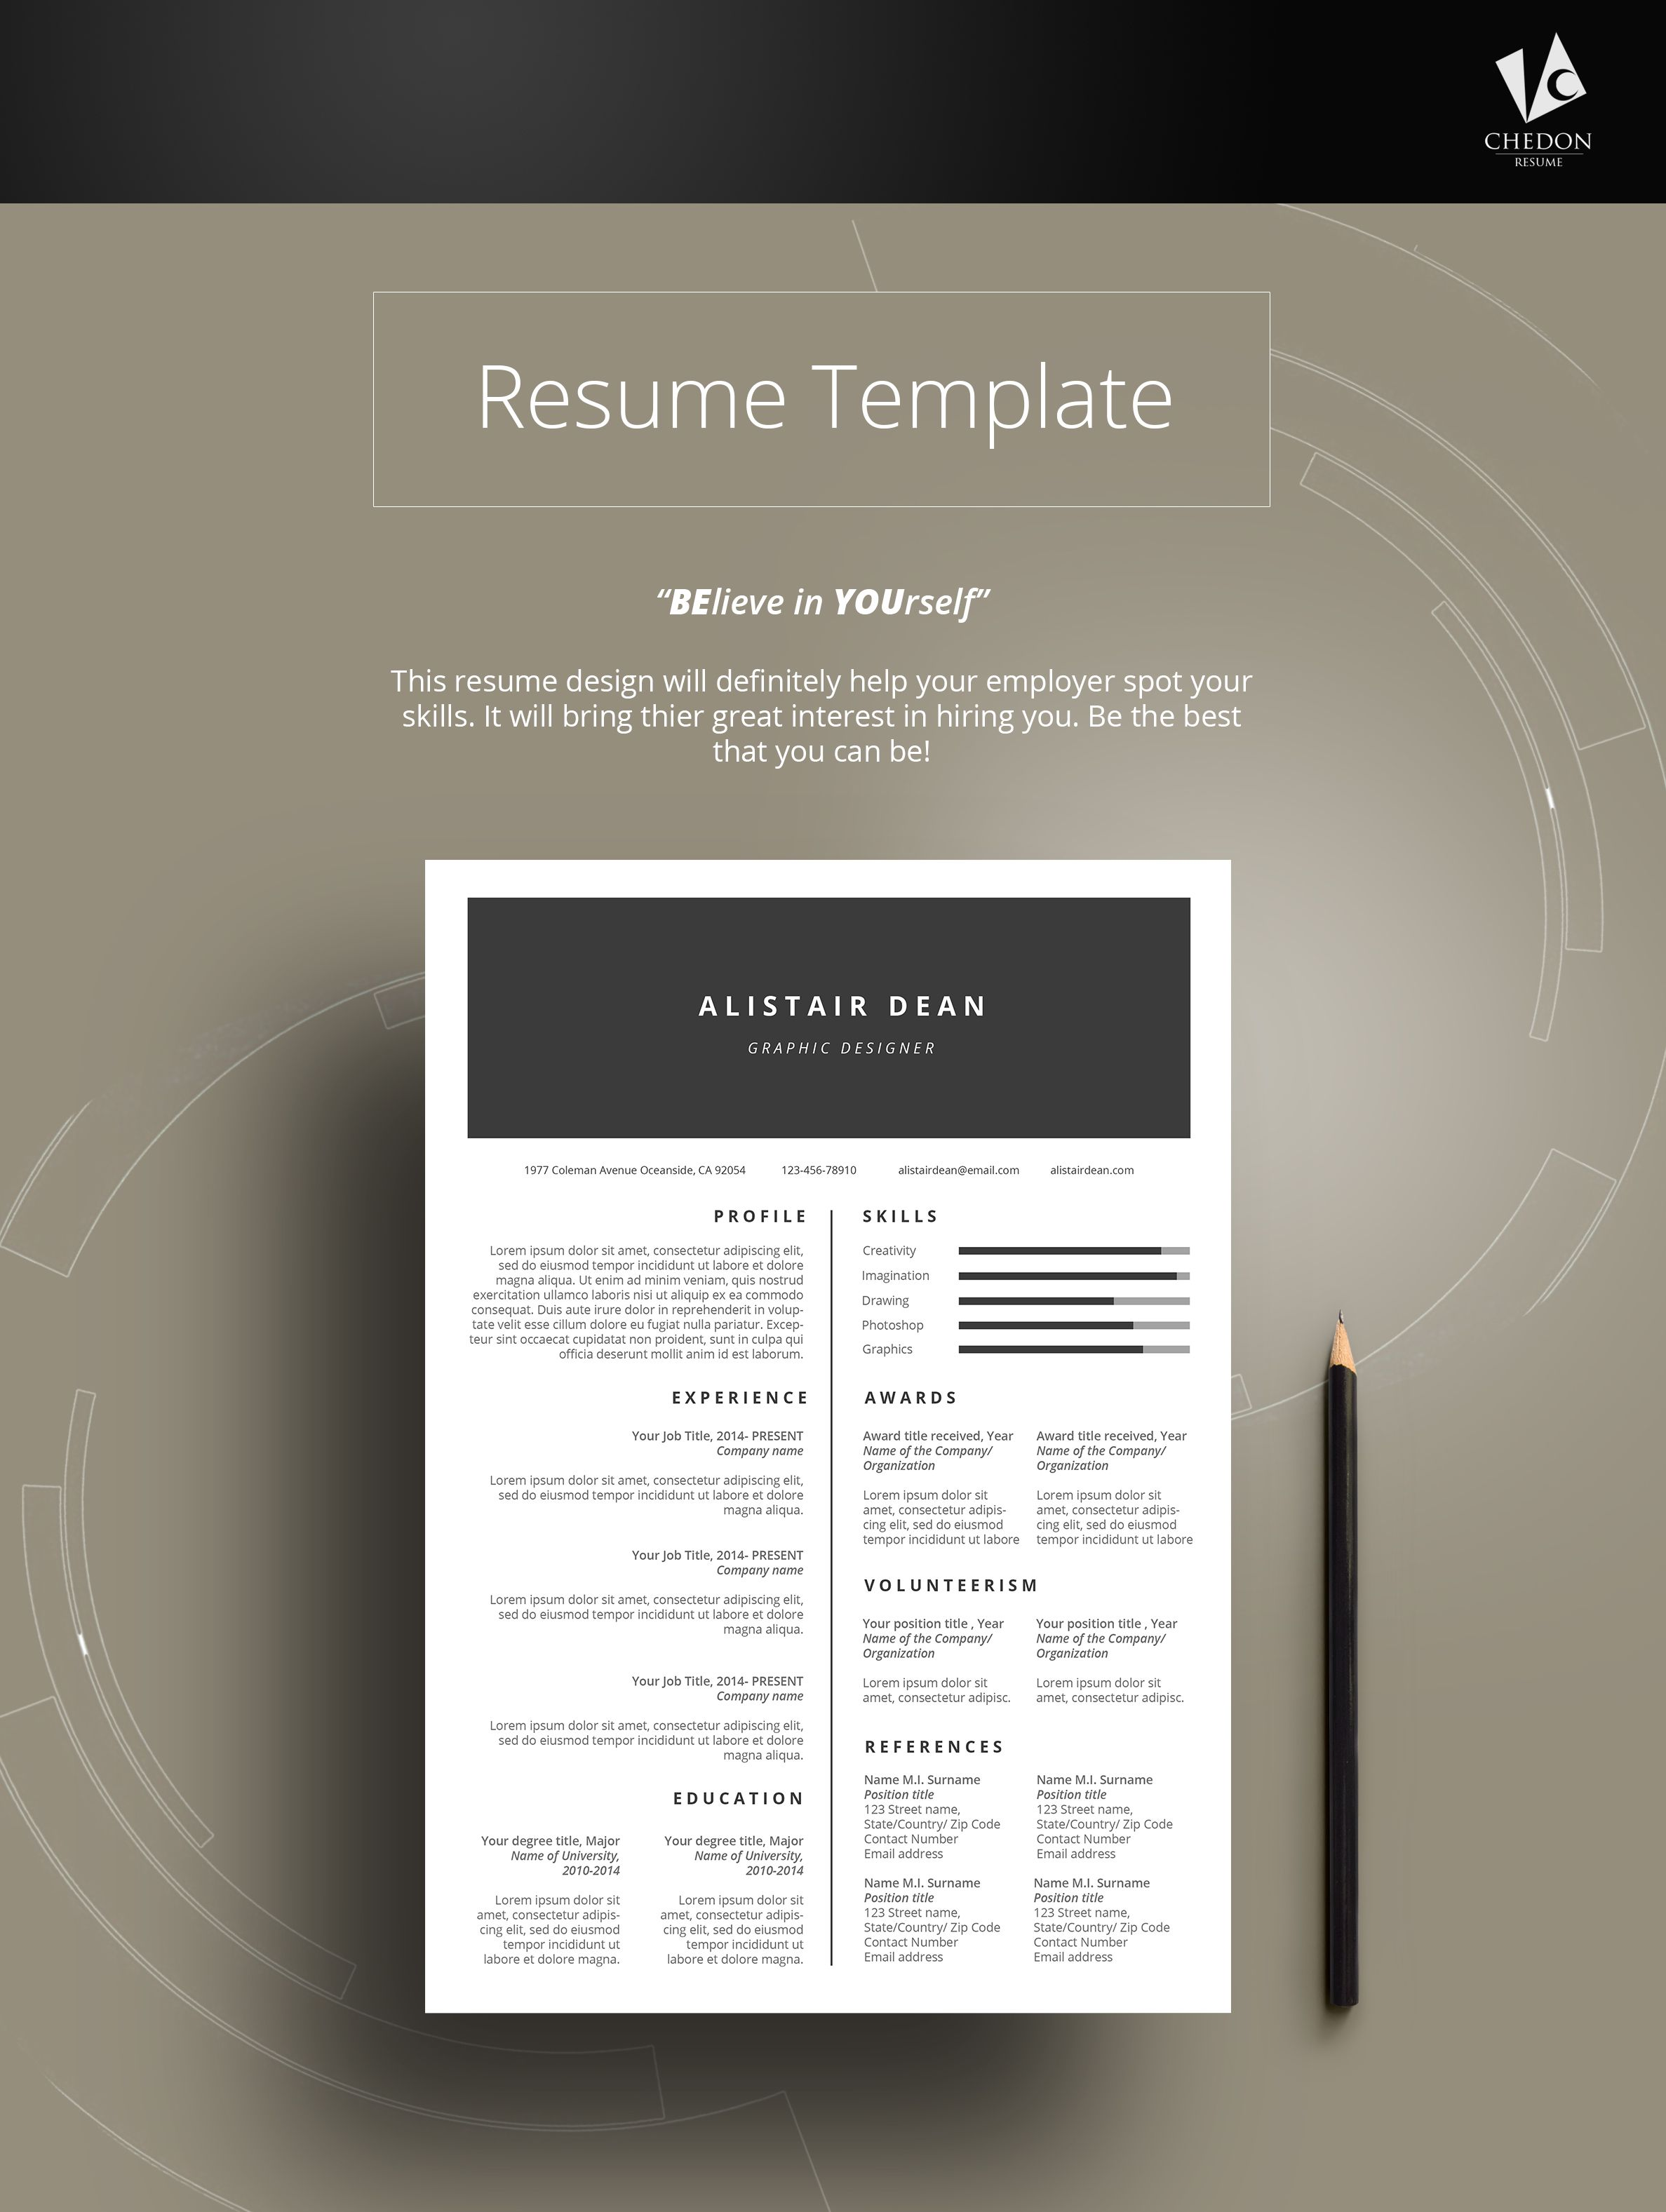 DUOSA RESUME Check this amazing resume template with FREE Cover ...